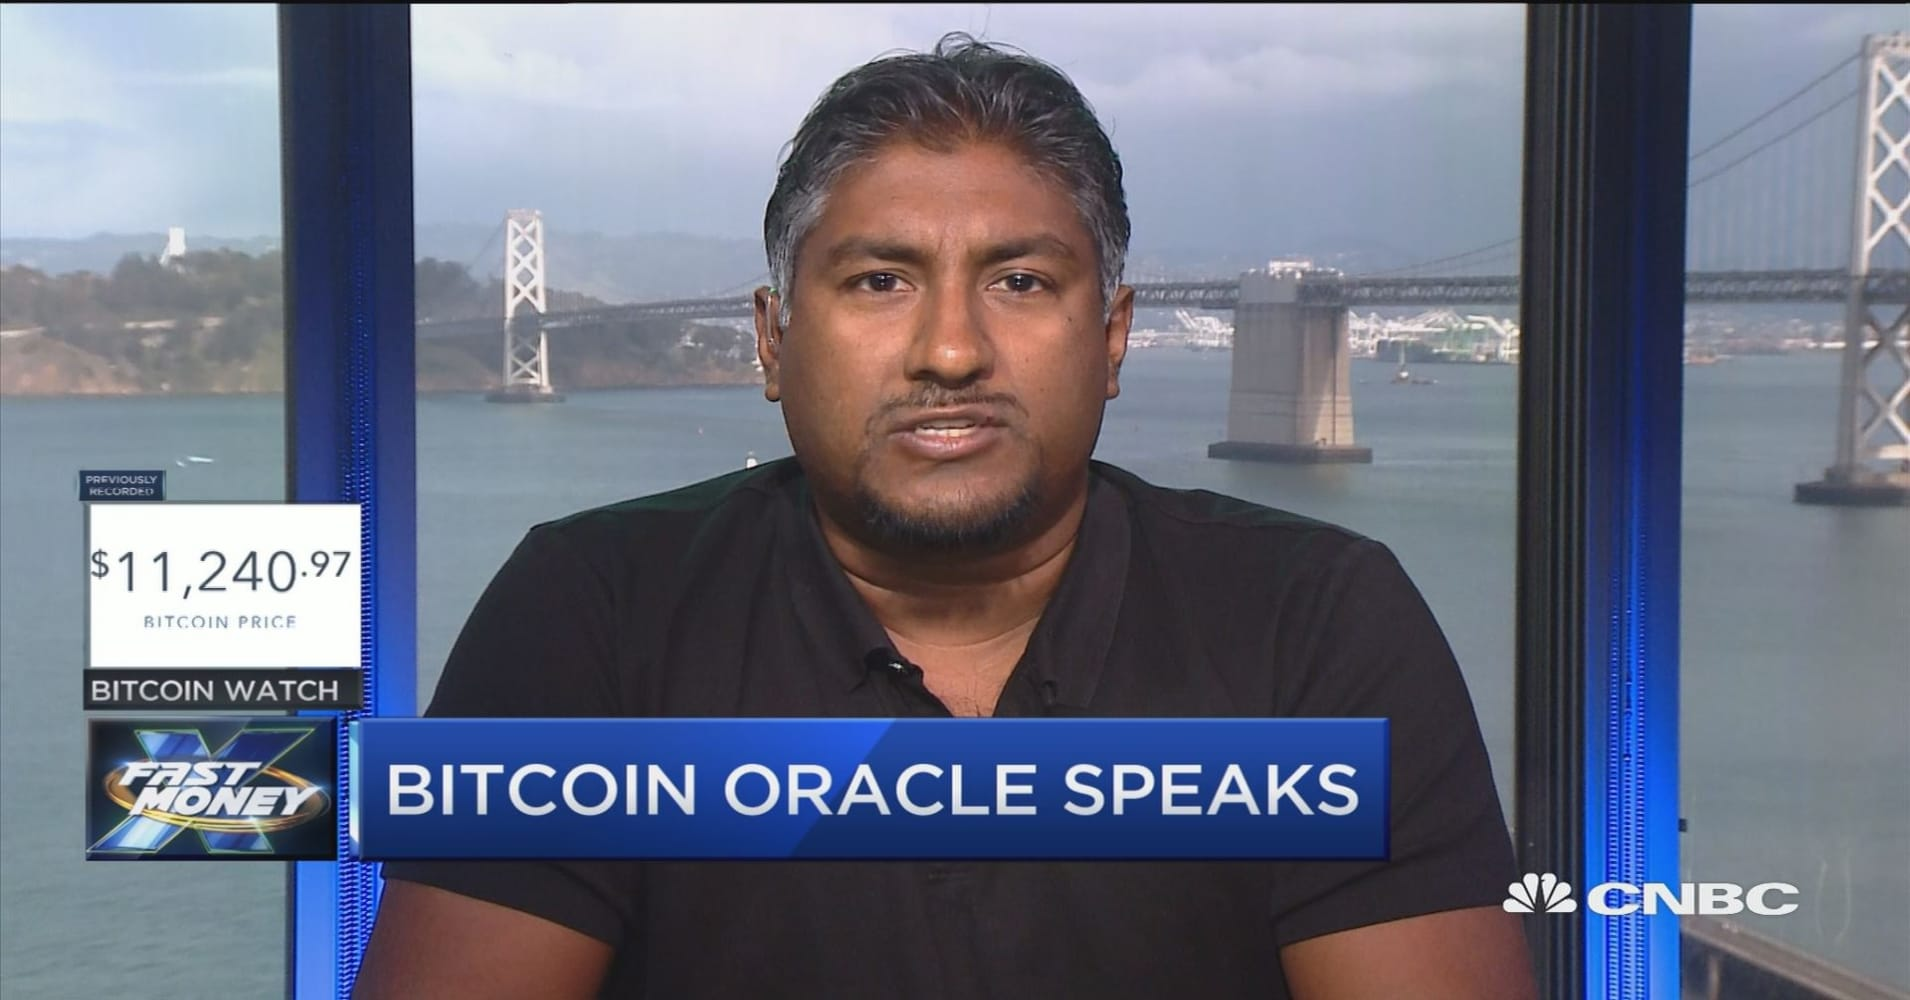 'Bitcoin oracle' says bitcoin cash in undervalued